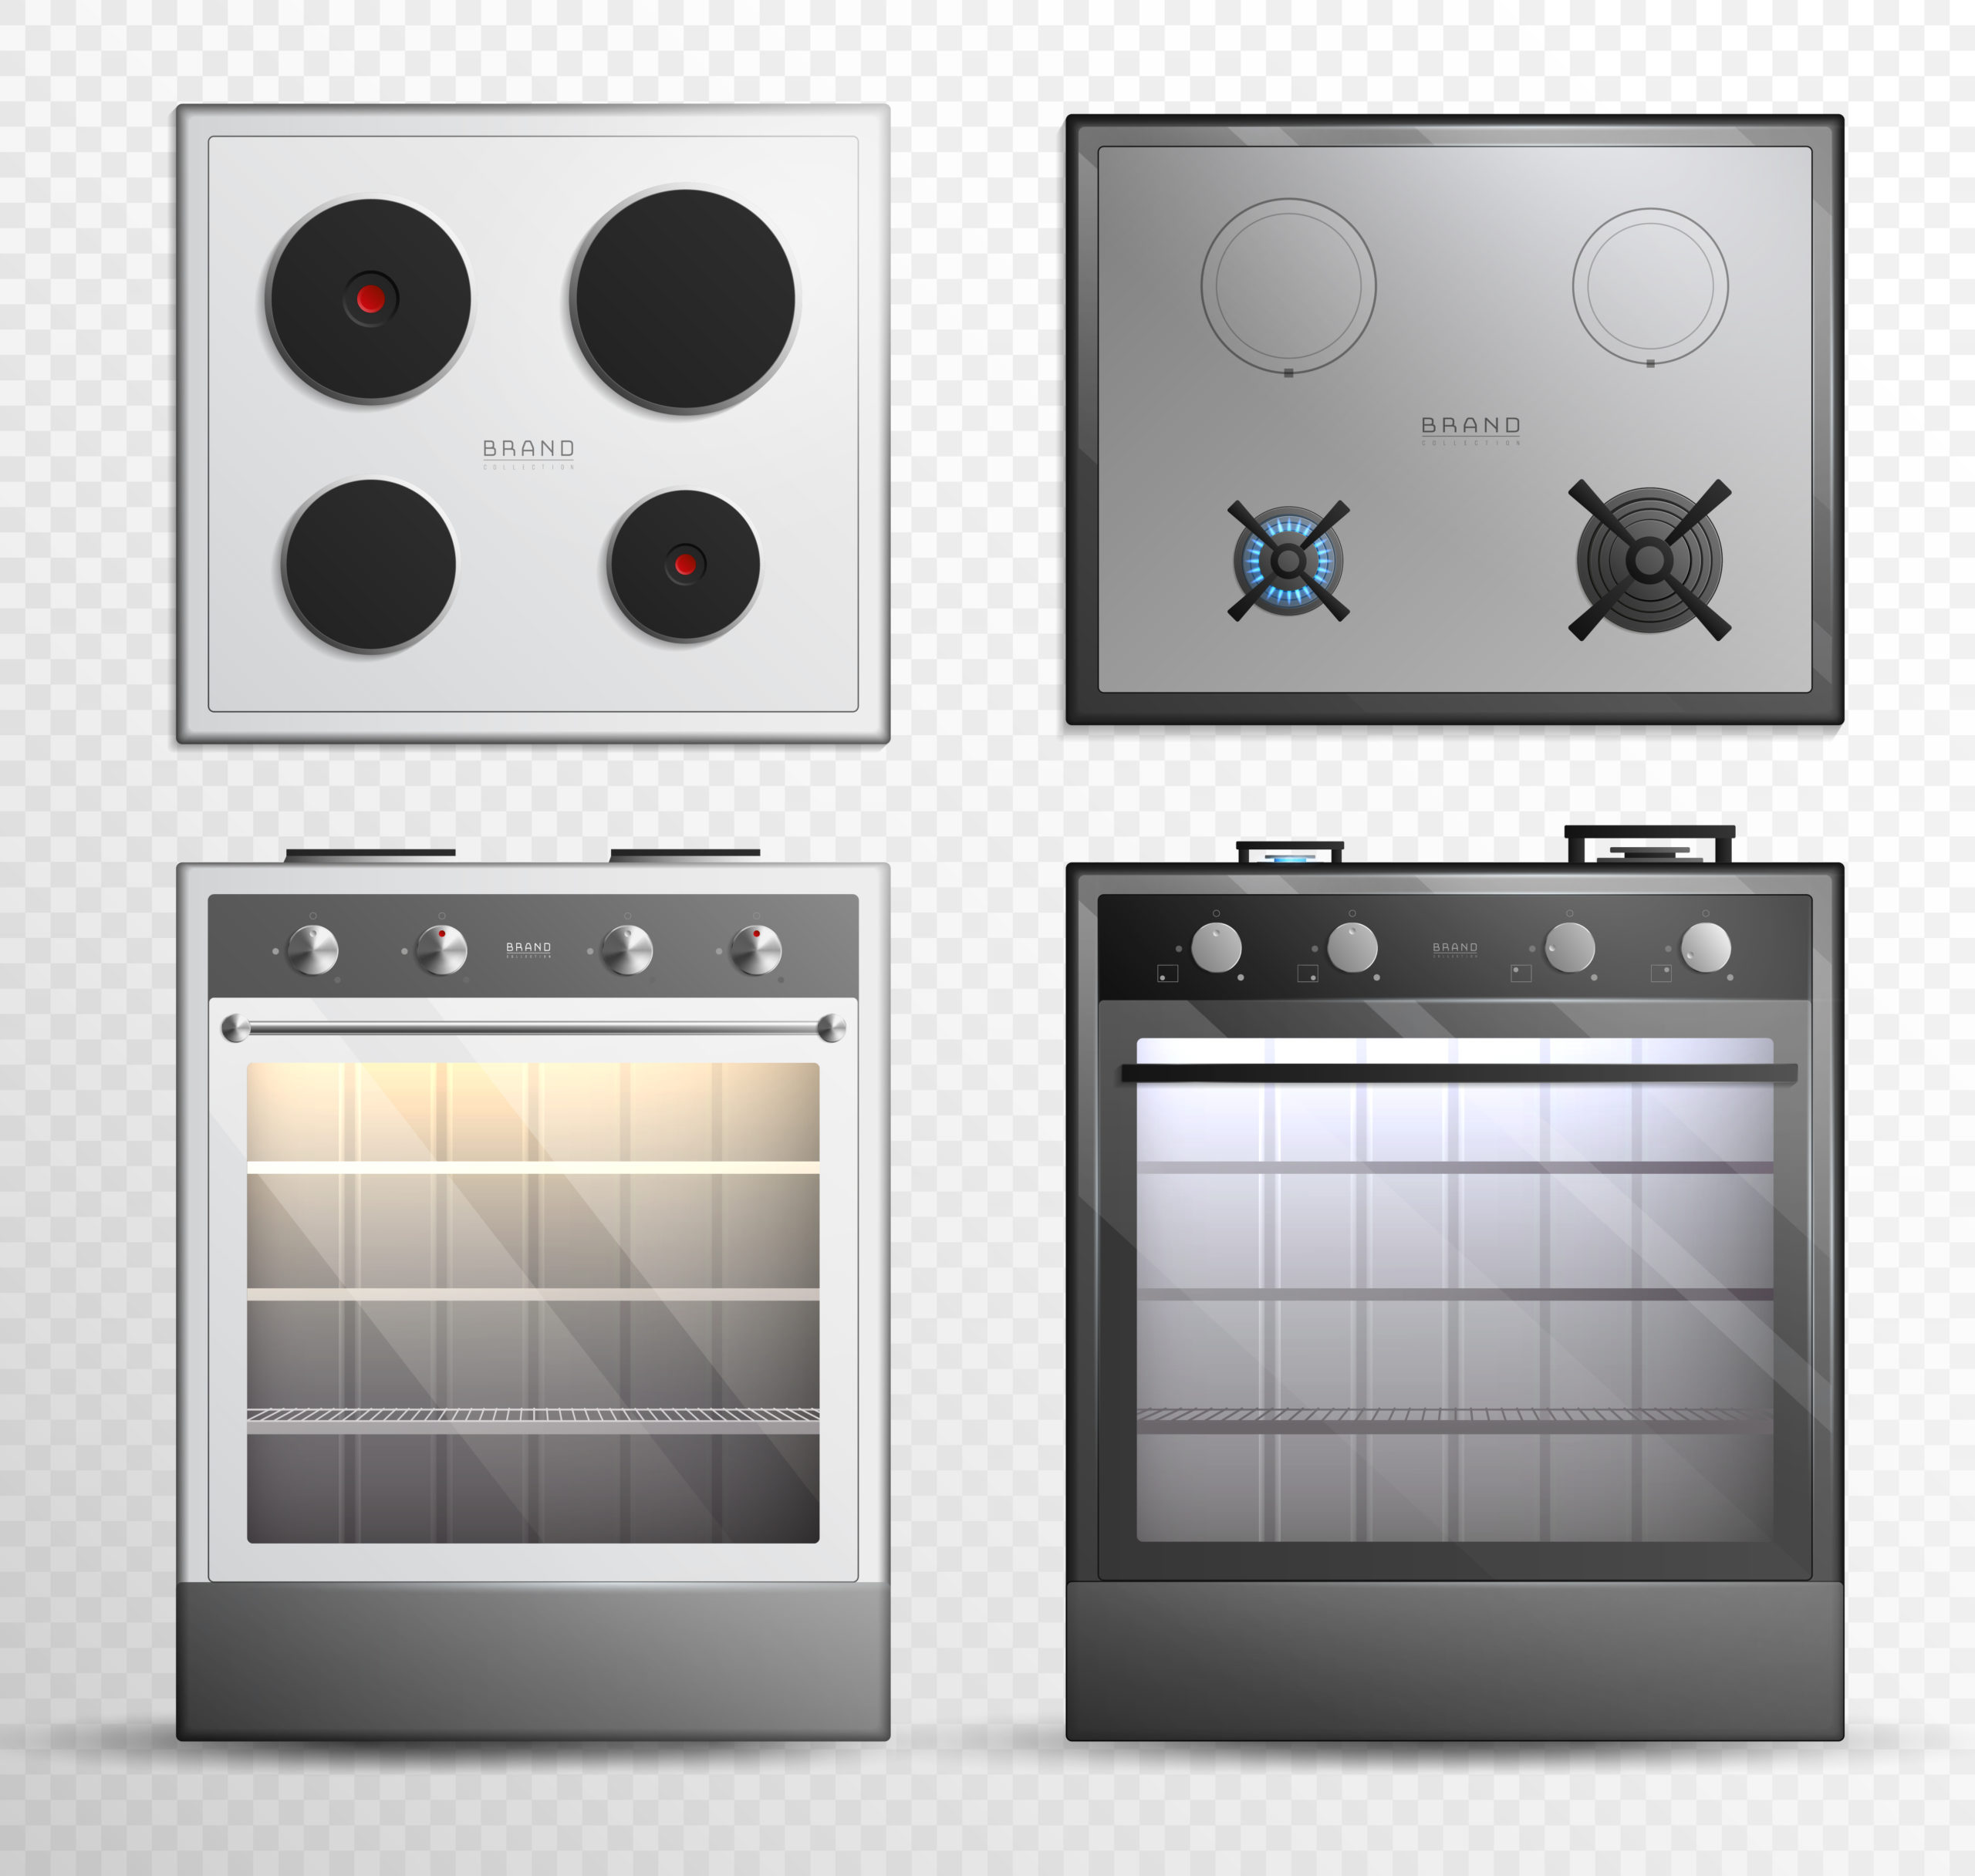 oven-parts